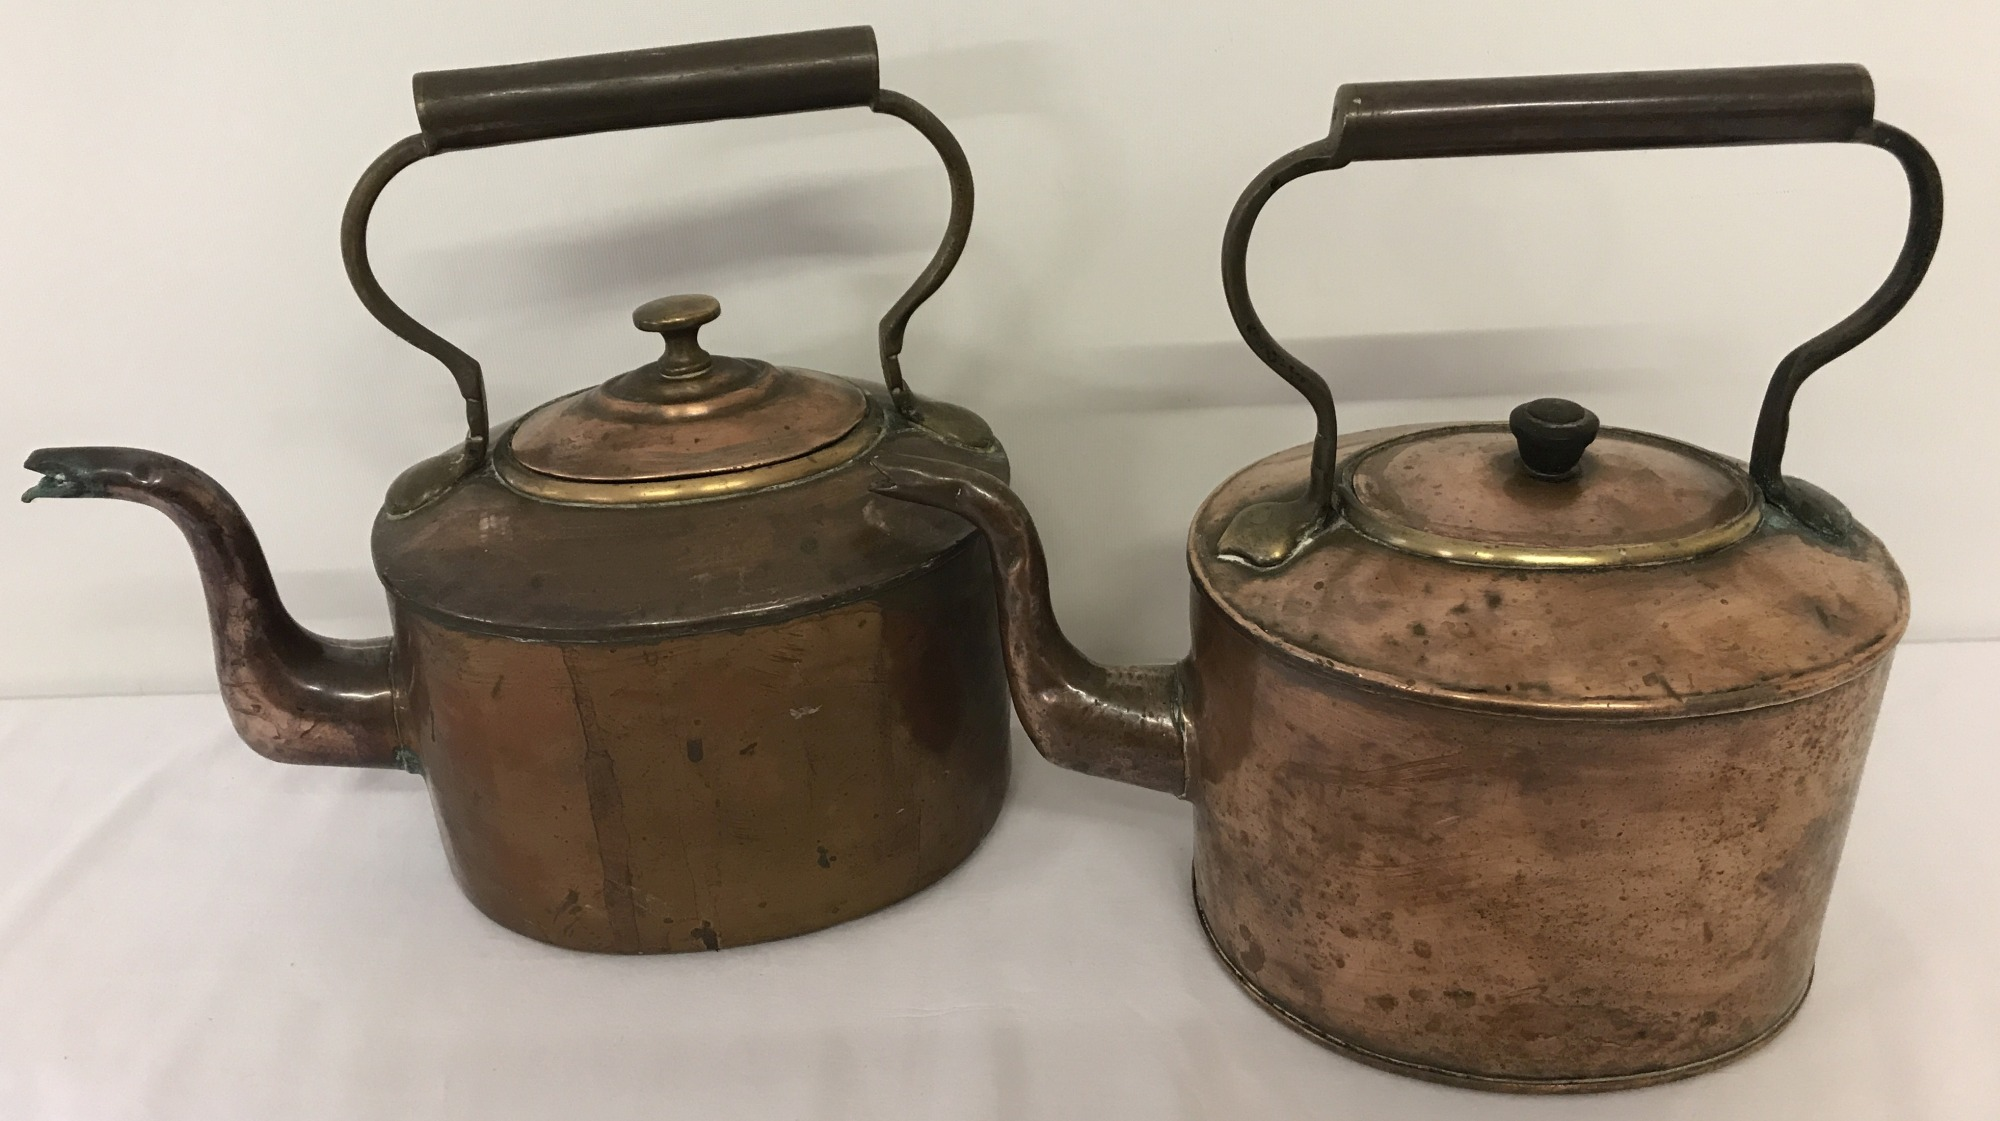 Lot 91 - 2 vintage oval shaped copper kettles with metal handles.